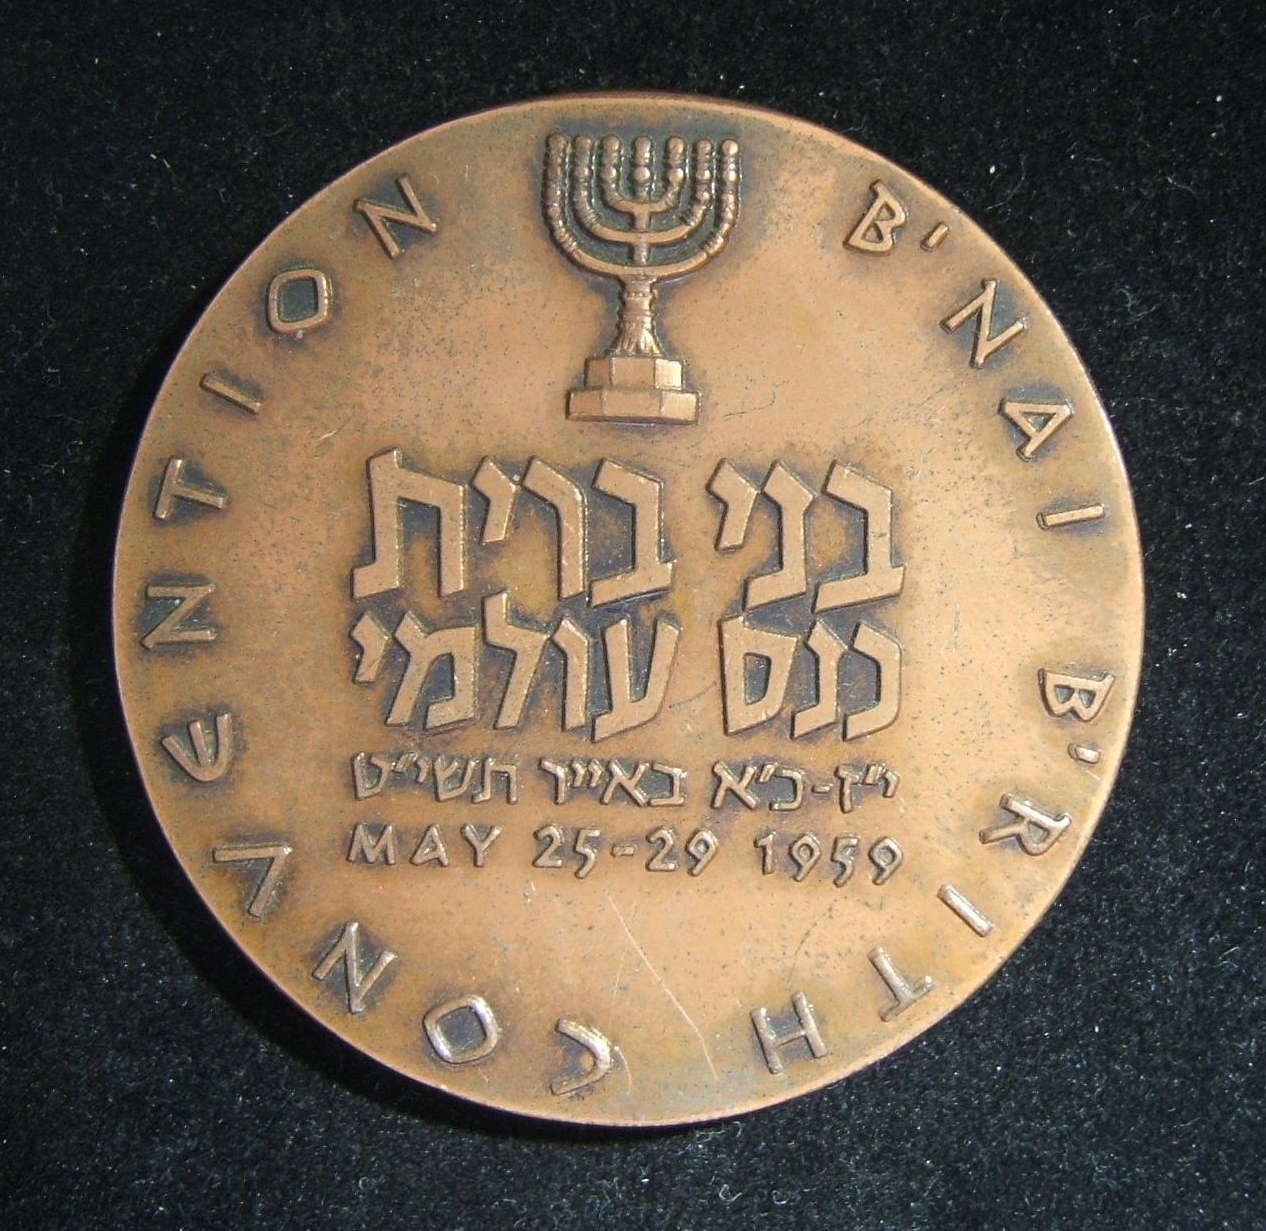 Israel: 1959 B'nai B'rith Convention in Jerusalem - rare participants' medal, in bronze; designed by Zvi Narkiss; size: 61mm; weight: 99.55g. Obverse: bi-lingual design of a Menora